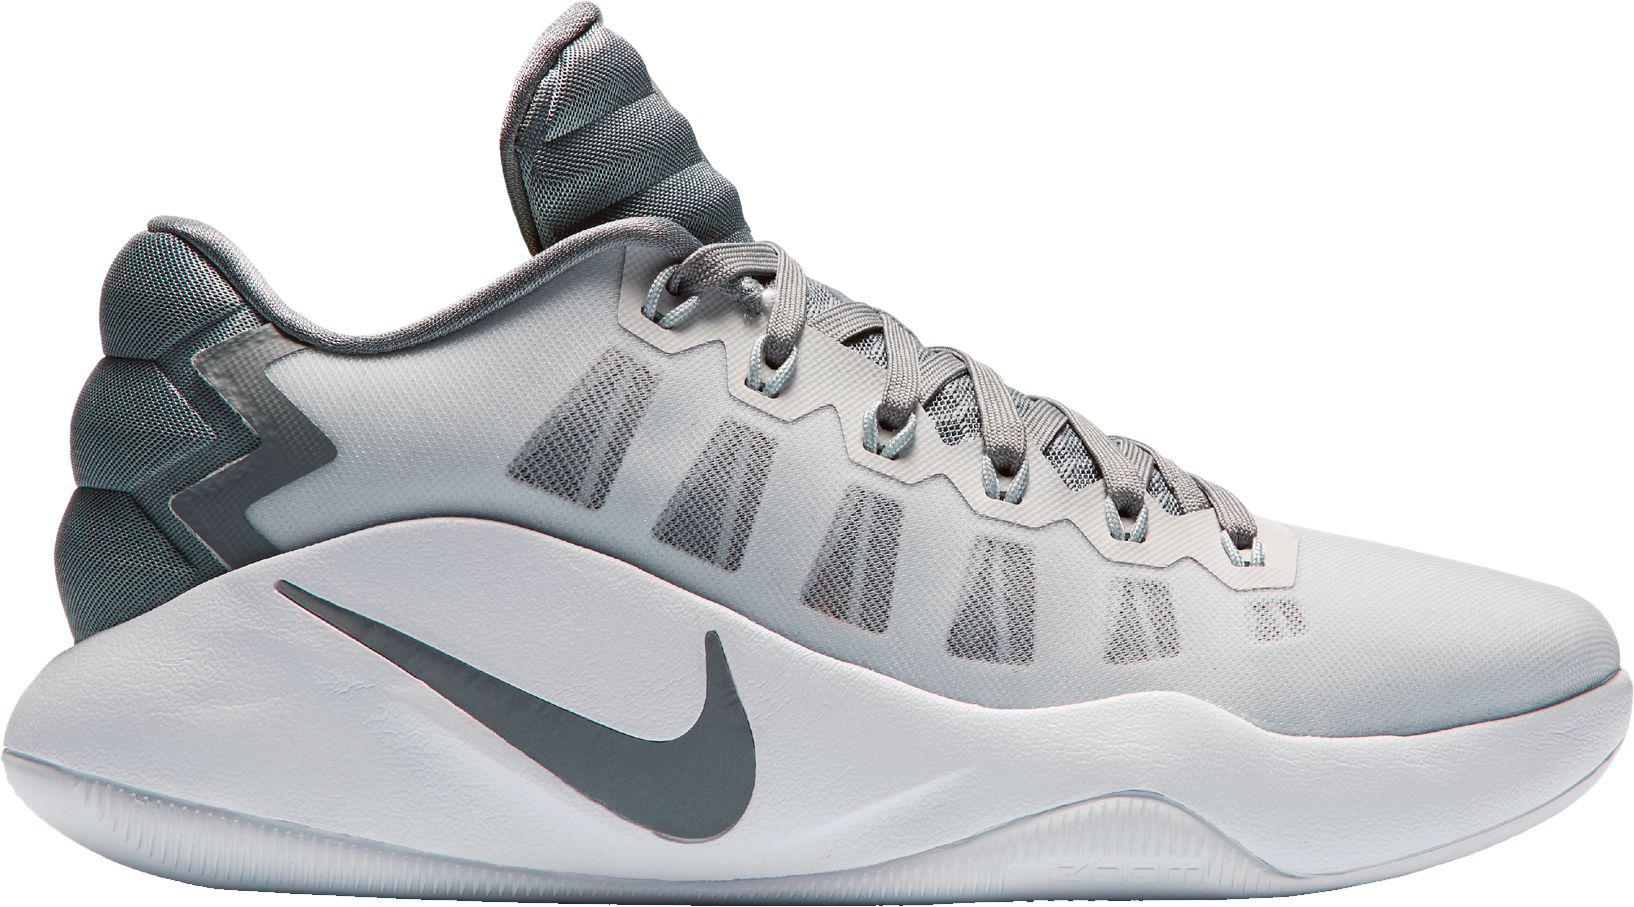 promo code 2d75d a0ada Lyst - Nike Hyperdunk 2016 Low Basketball Shoes in Gray for Men